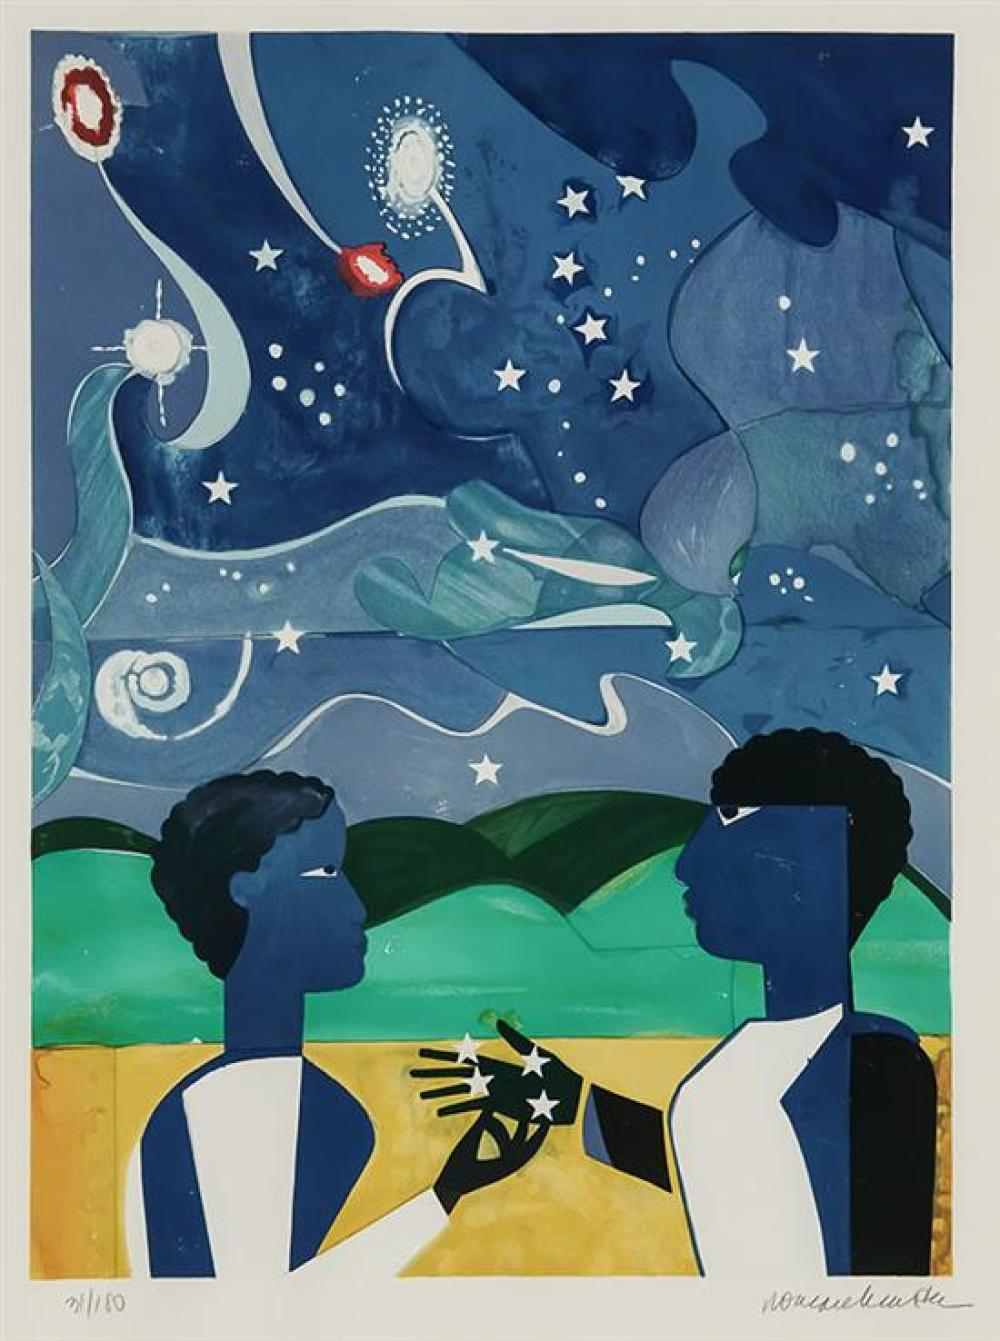 Romare Bearden (American 1911-1988), Two Worlds, Lithograph in Color, 21-1/4 x 15-1/2 inches